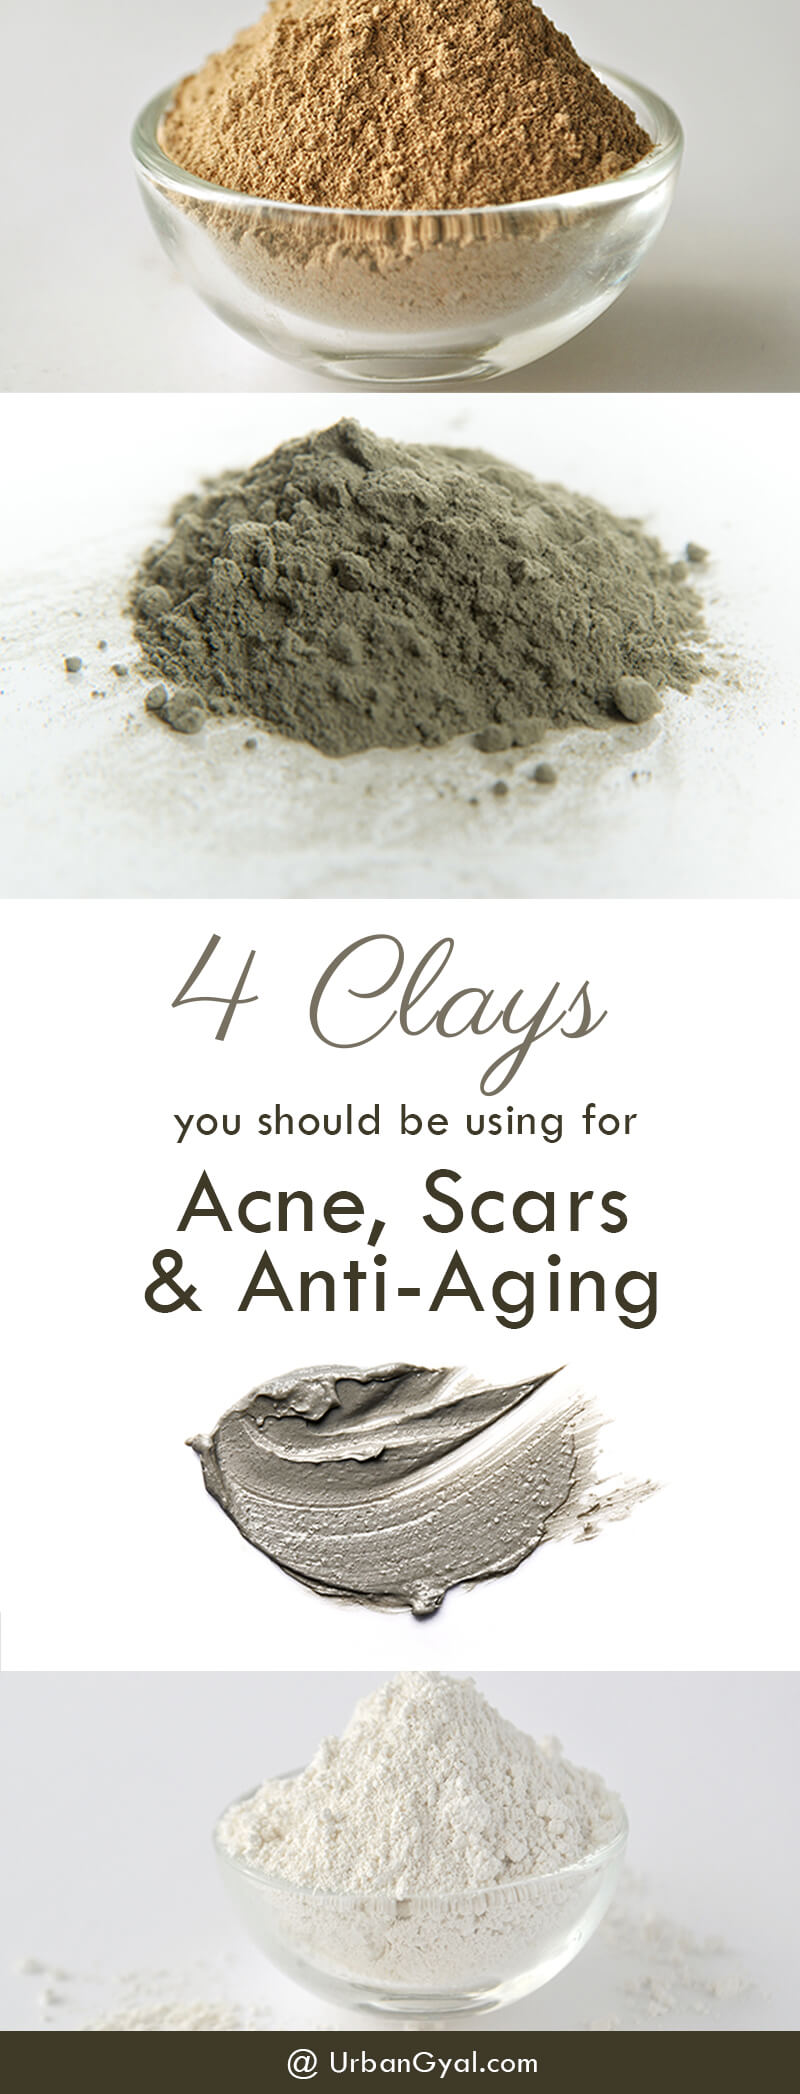 4 Clays you should be Using for Acne, Scars and Anti-Aging | Clay Mask